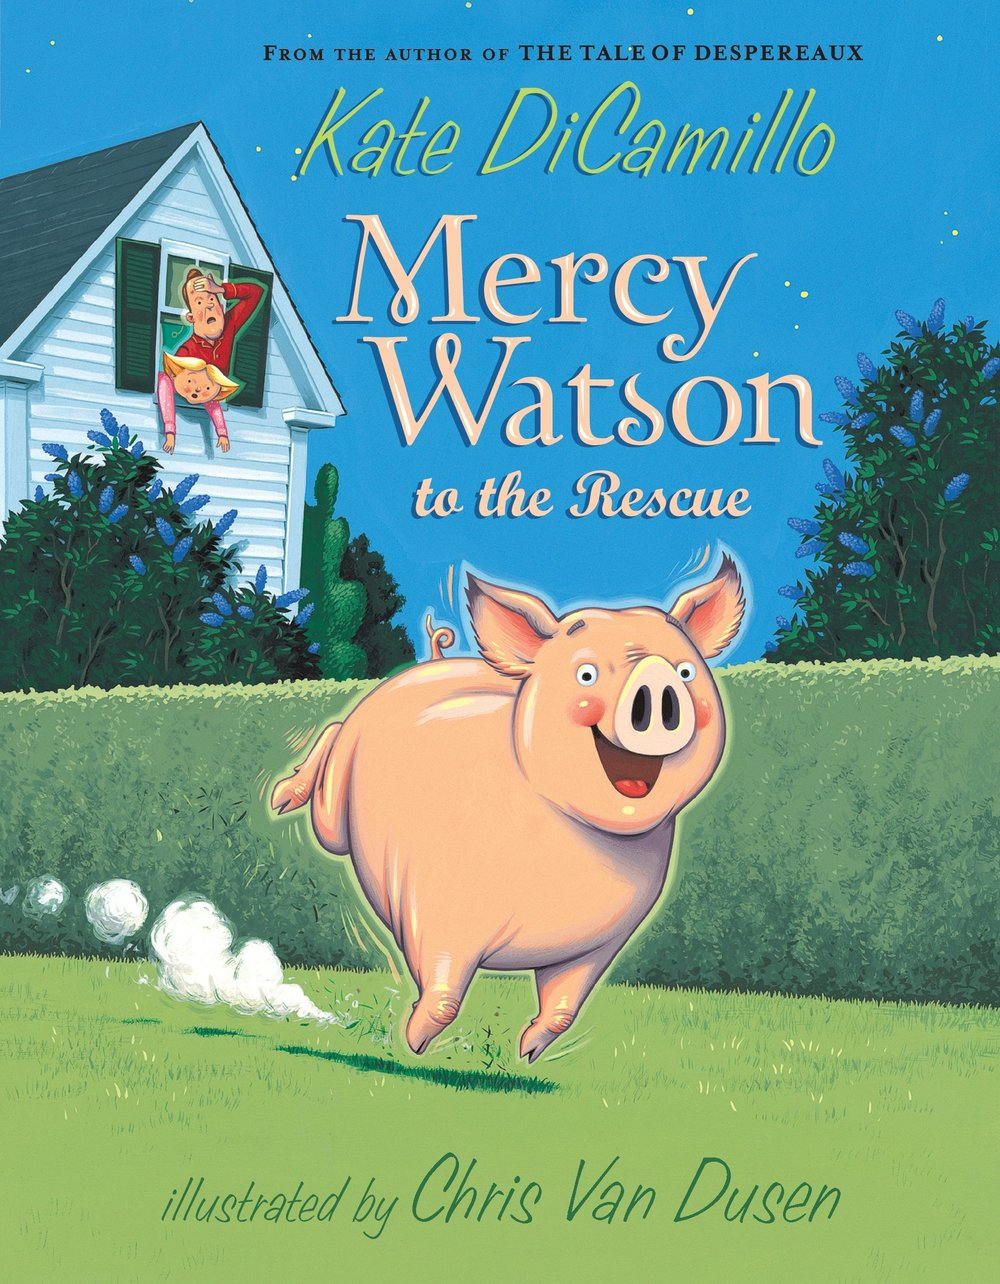 Mr. and Mrs. Watson have a pig named Mercy.Each night they sing Mercy to sleep...    This song makes Mercy feel warm inside, as if she has just eaten hot toast with a great deal of butter on it.   - -taken from Mercy Watson to the Rescue by Kate DiCamillo